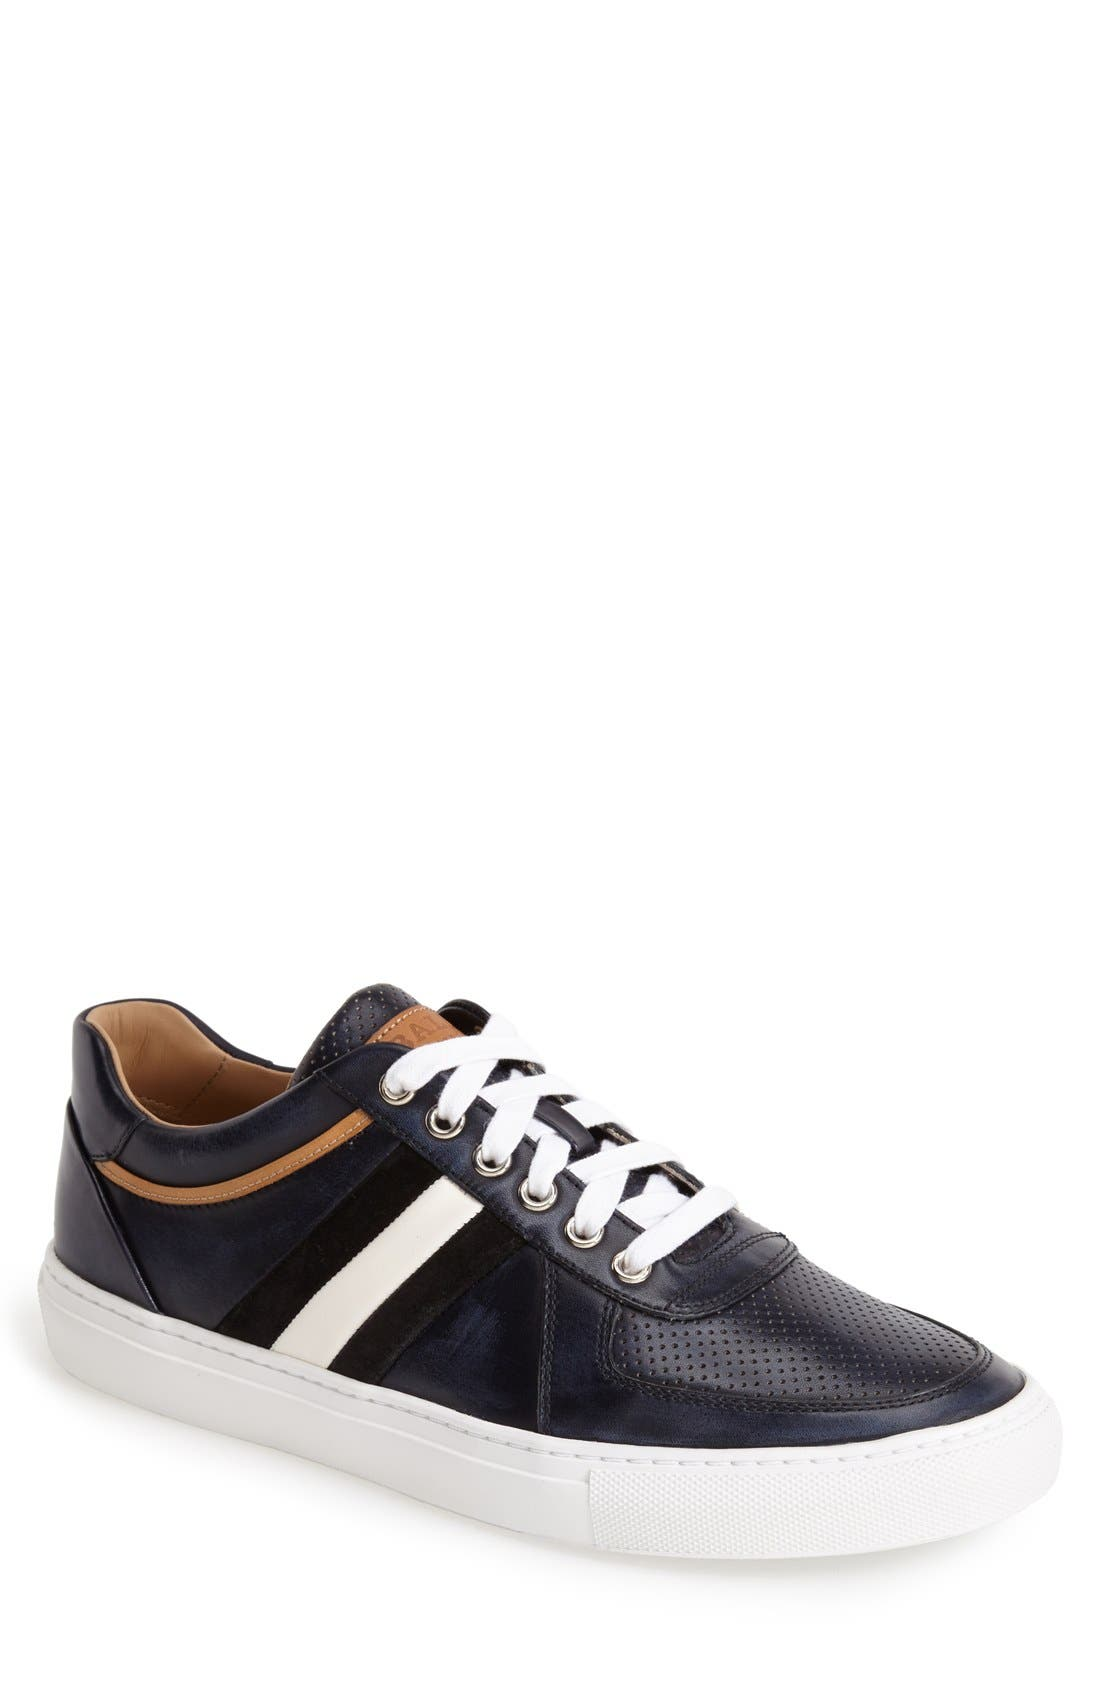 Alternate Image 1 Selected - Bally 'Heider' Leather Sneaker (Men)